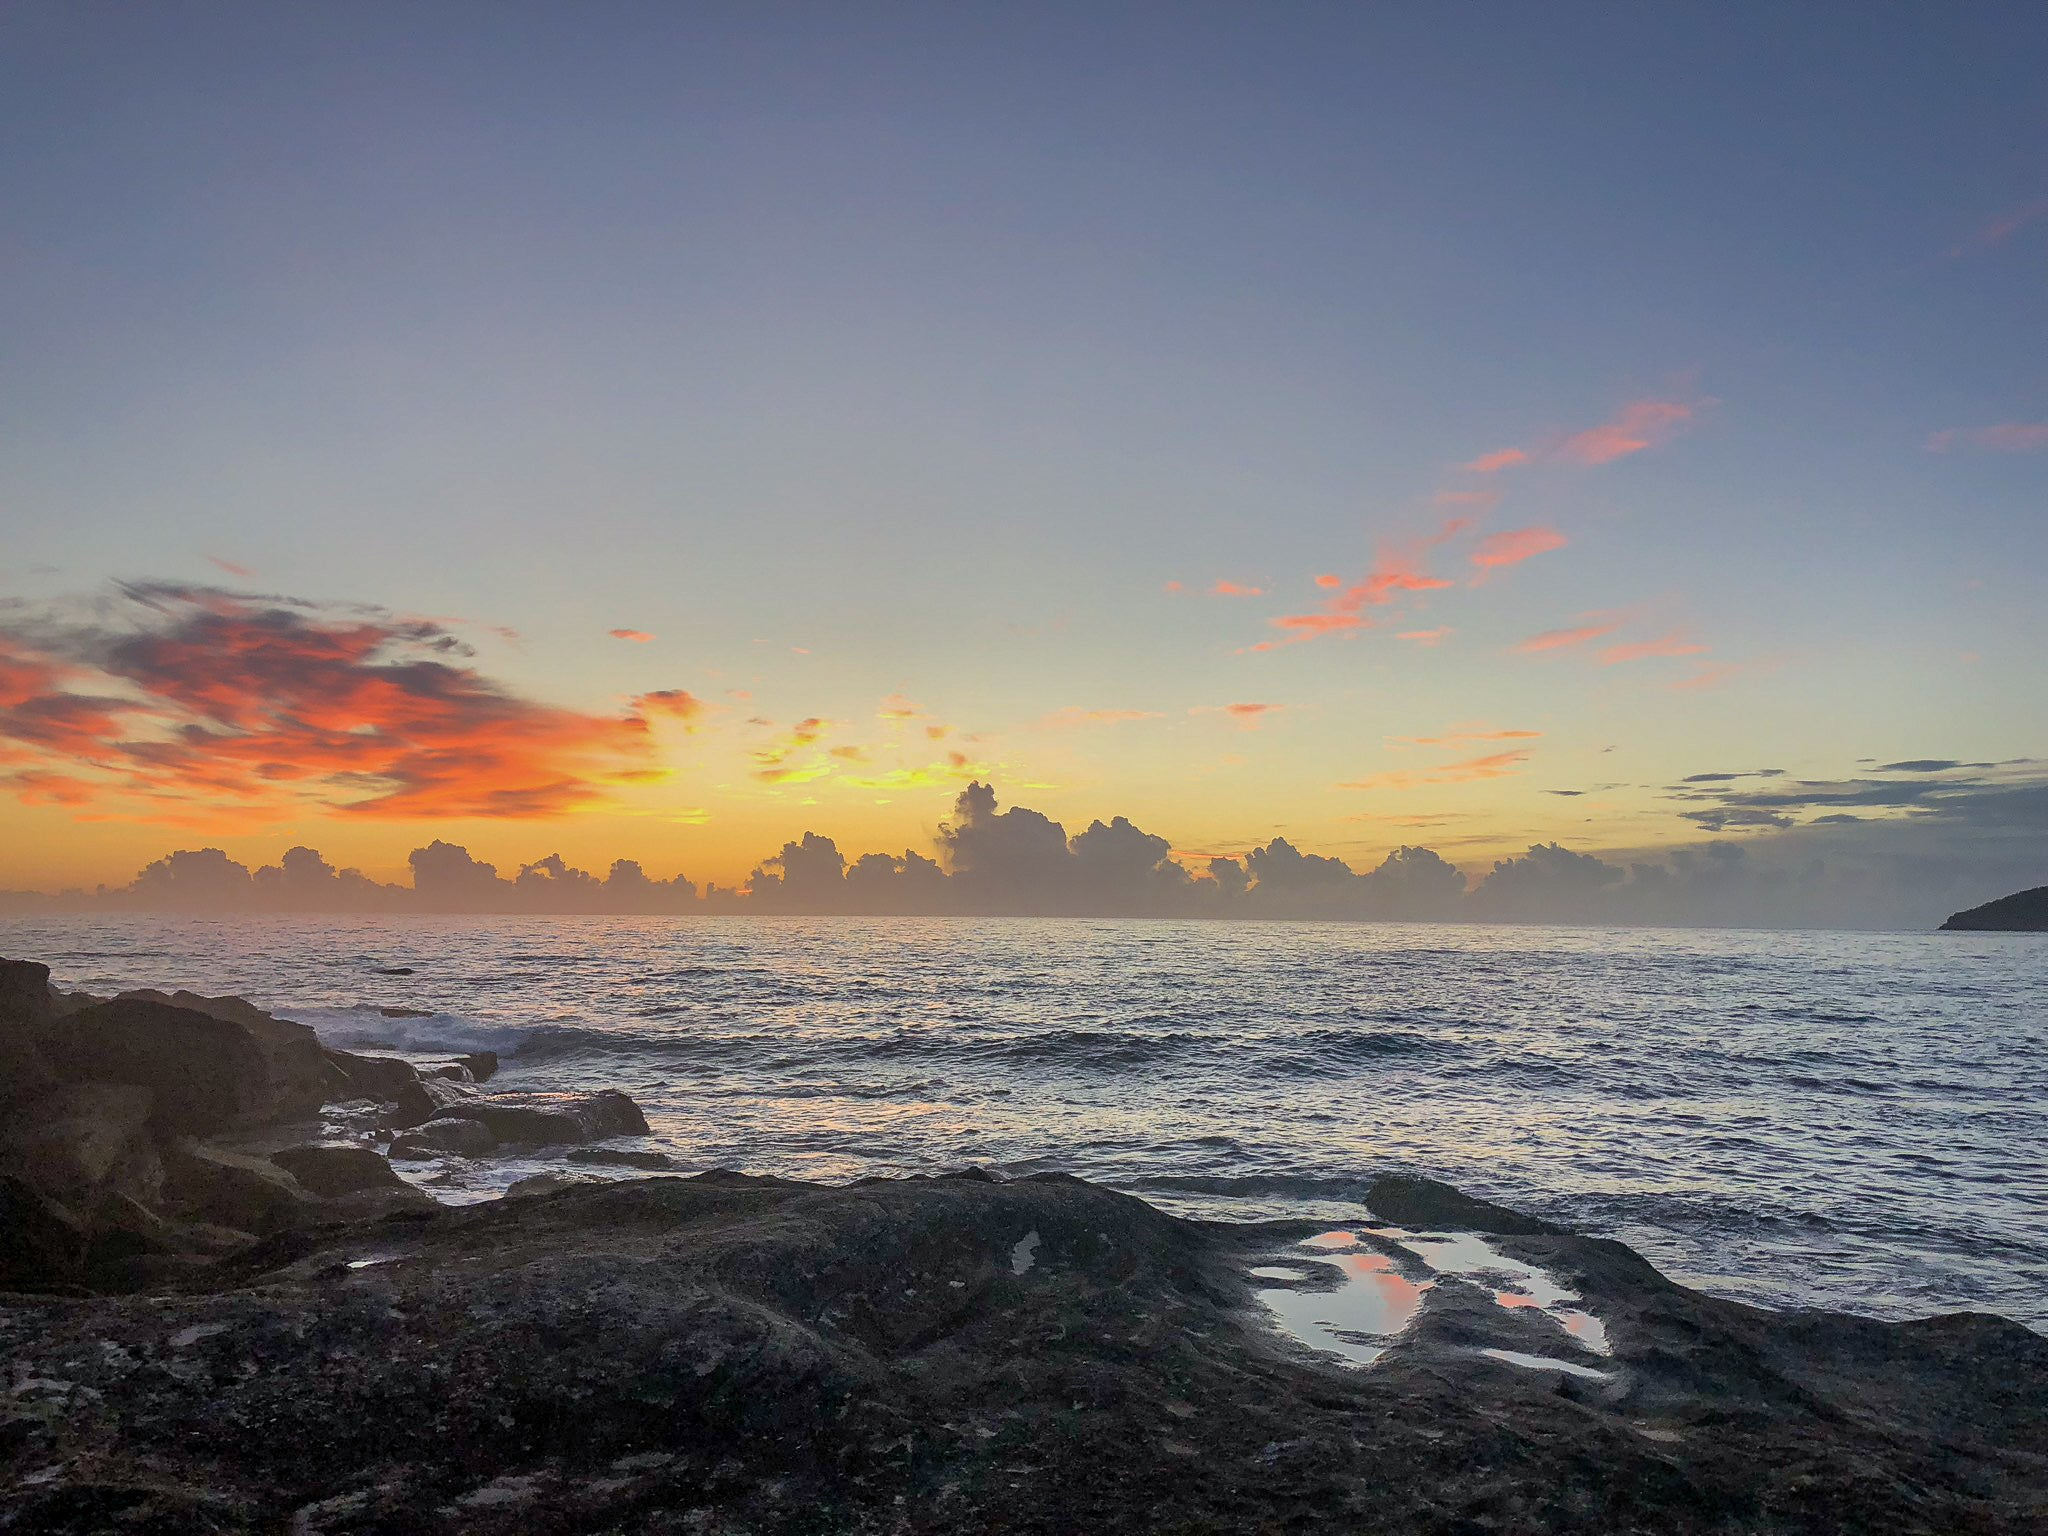 Sunrise photo from the 6th February 2019 from Queenscliff headland in Sydney